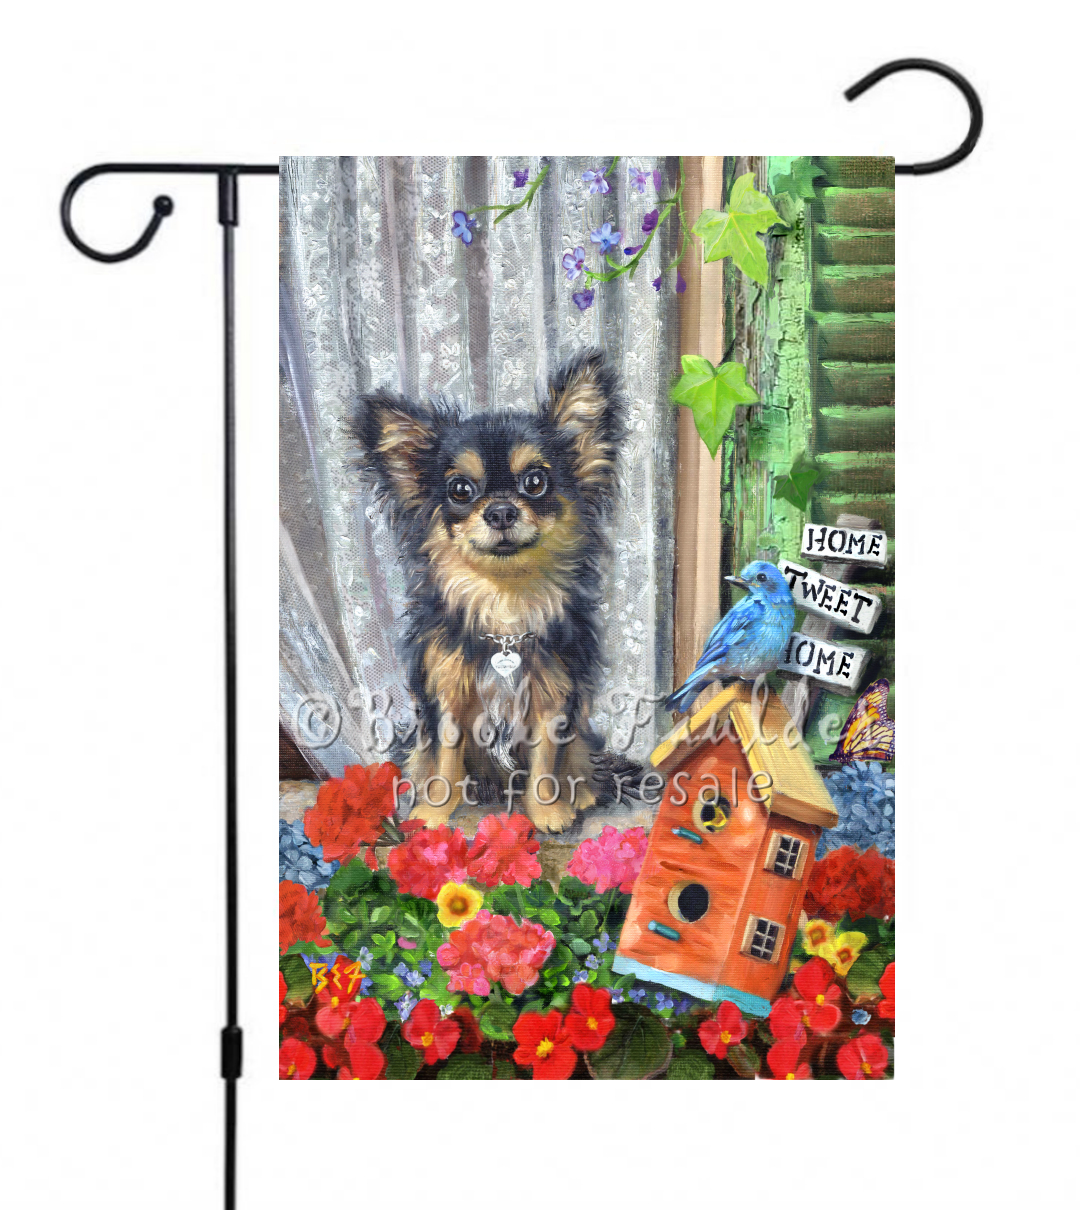 Summer garden flag with Chihuahua and bluebird